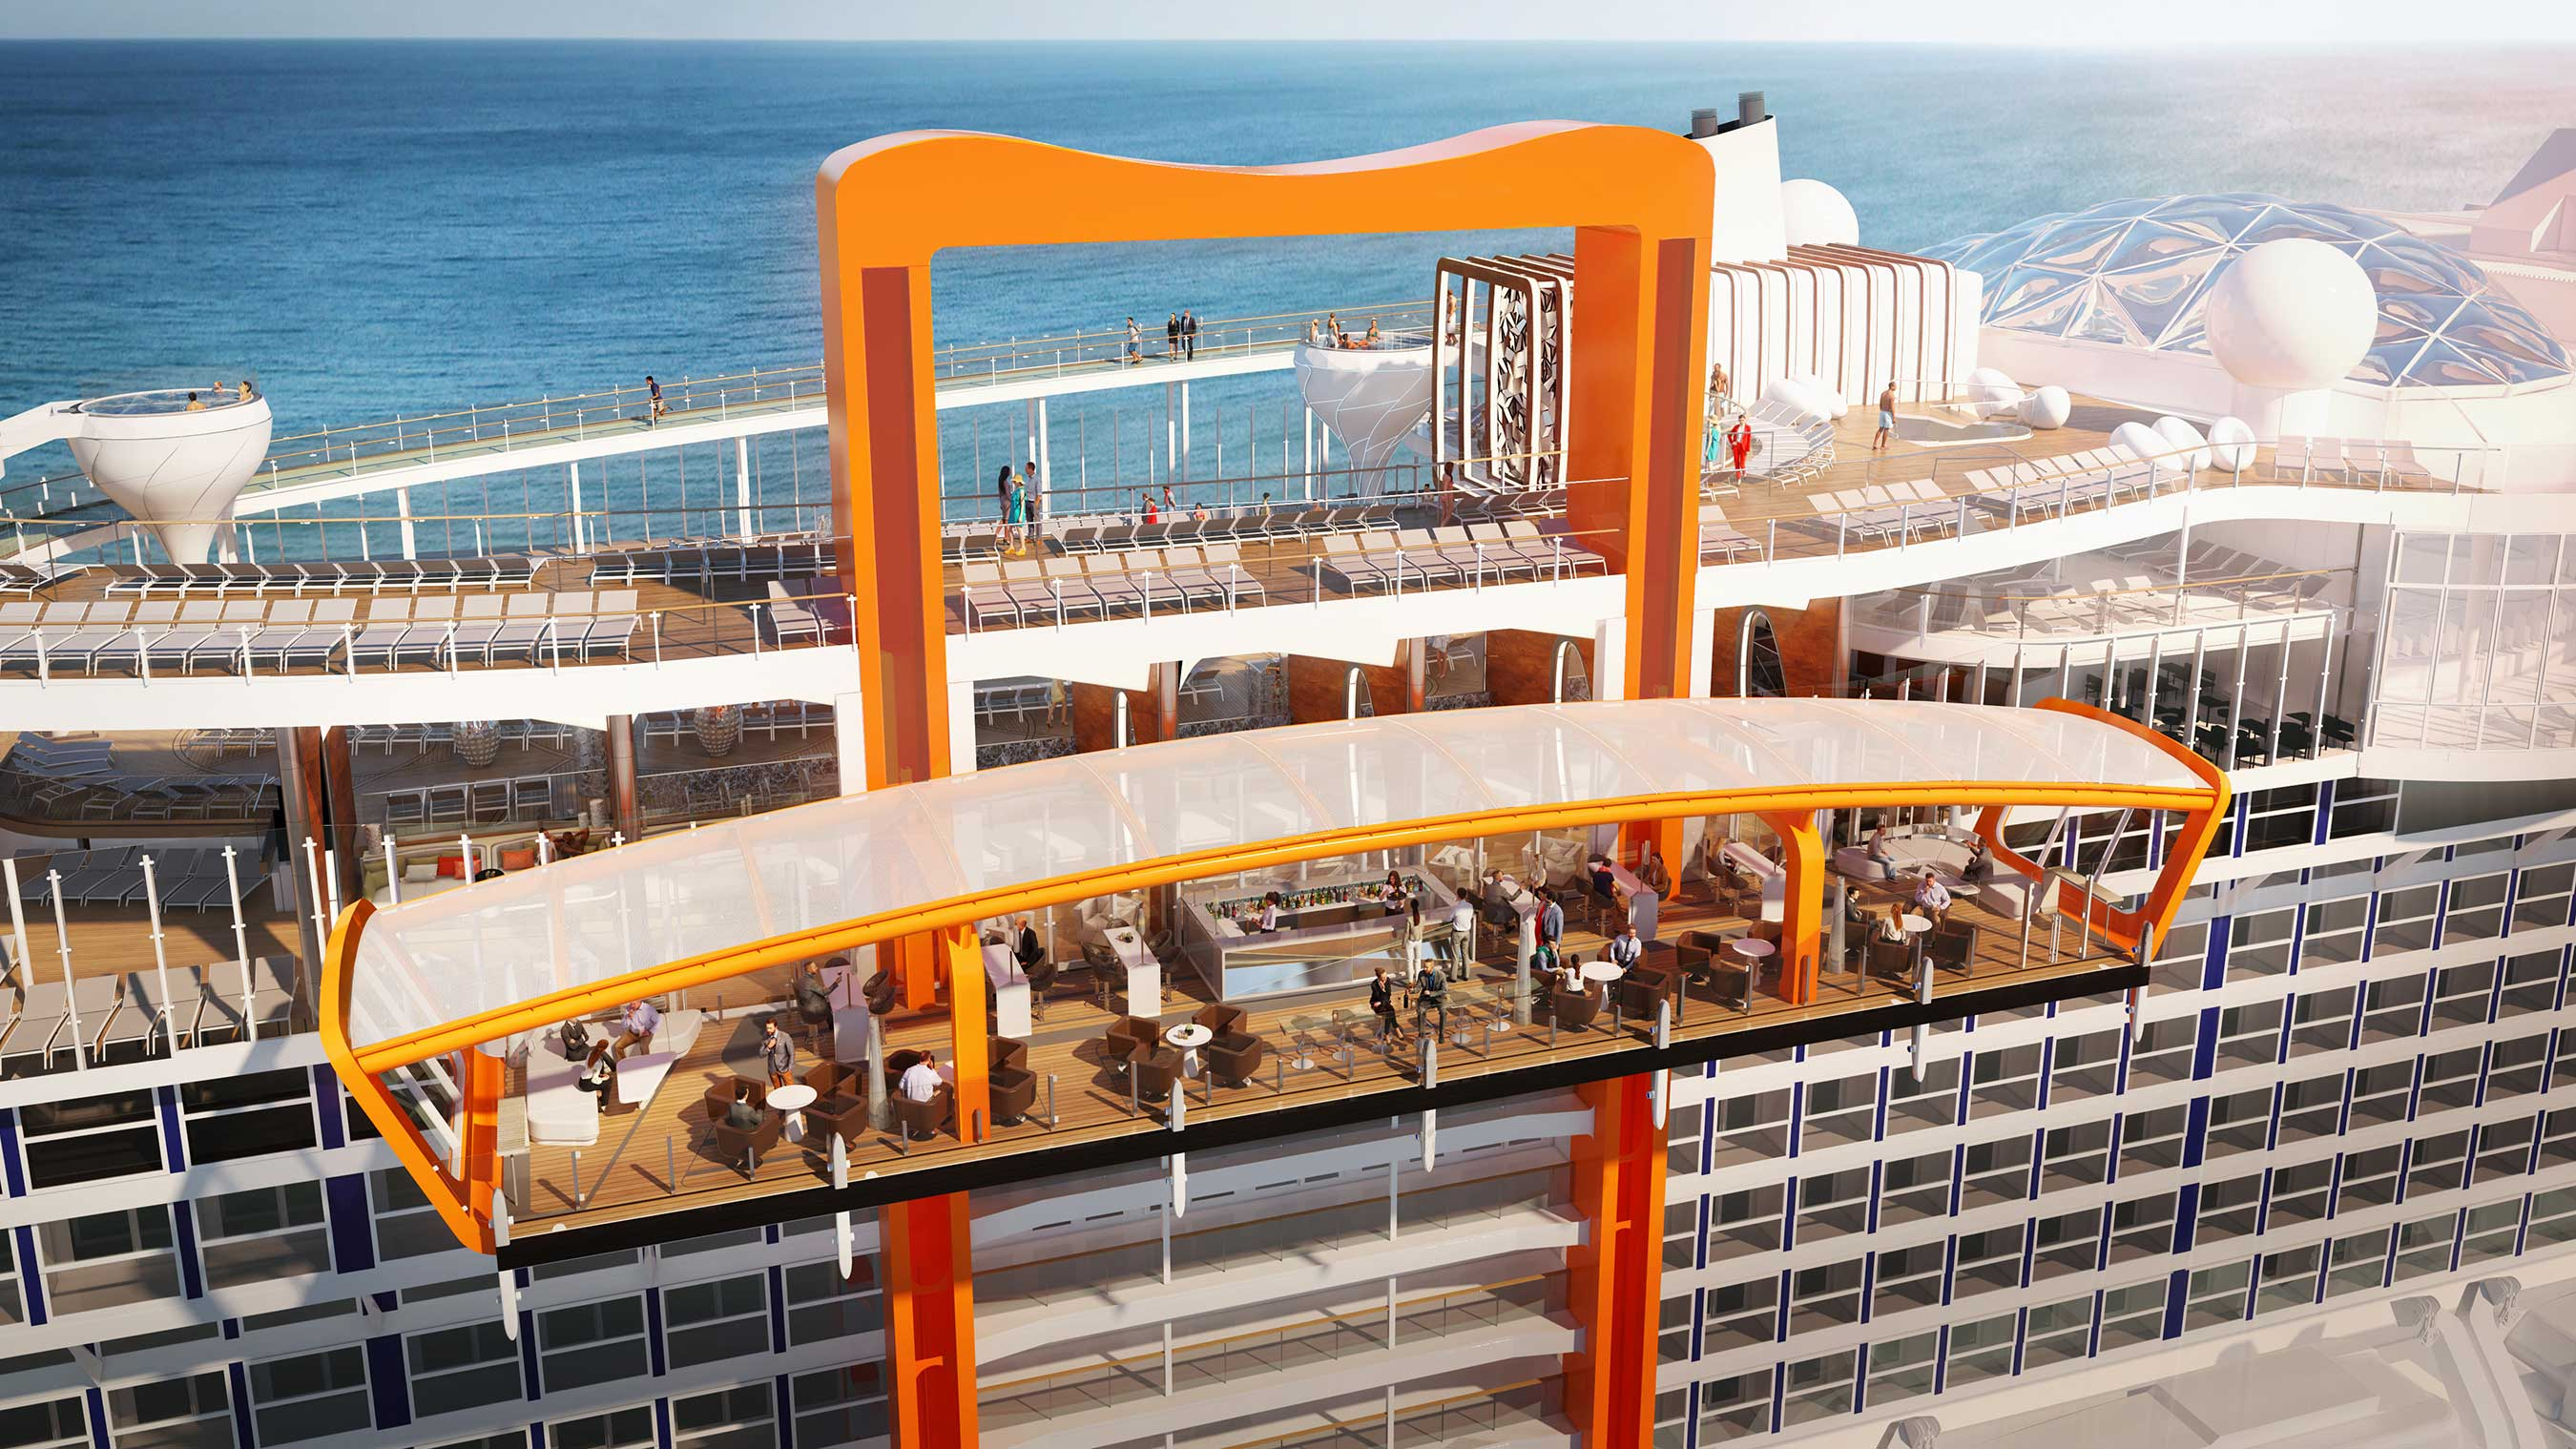 Celebrity Cruises Reveals Celebrity Edge, A Ship Designed to Transform Expectations